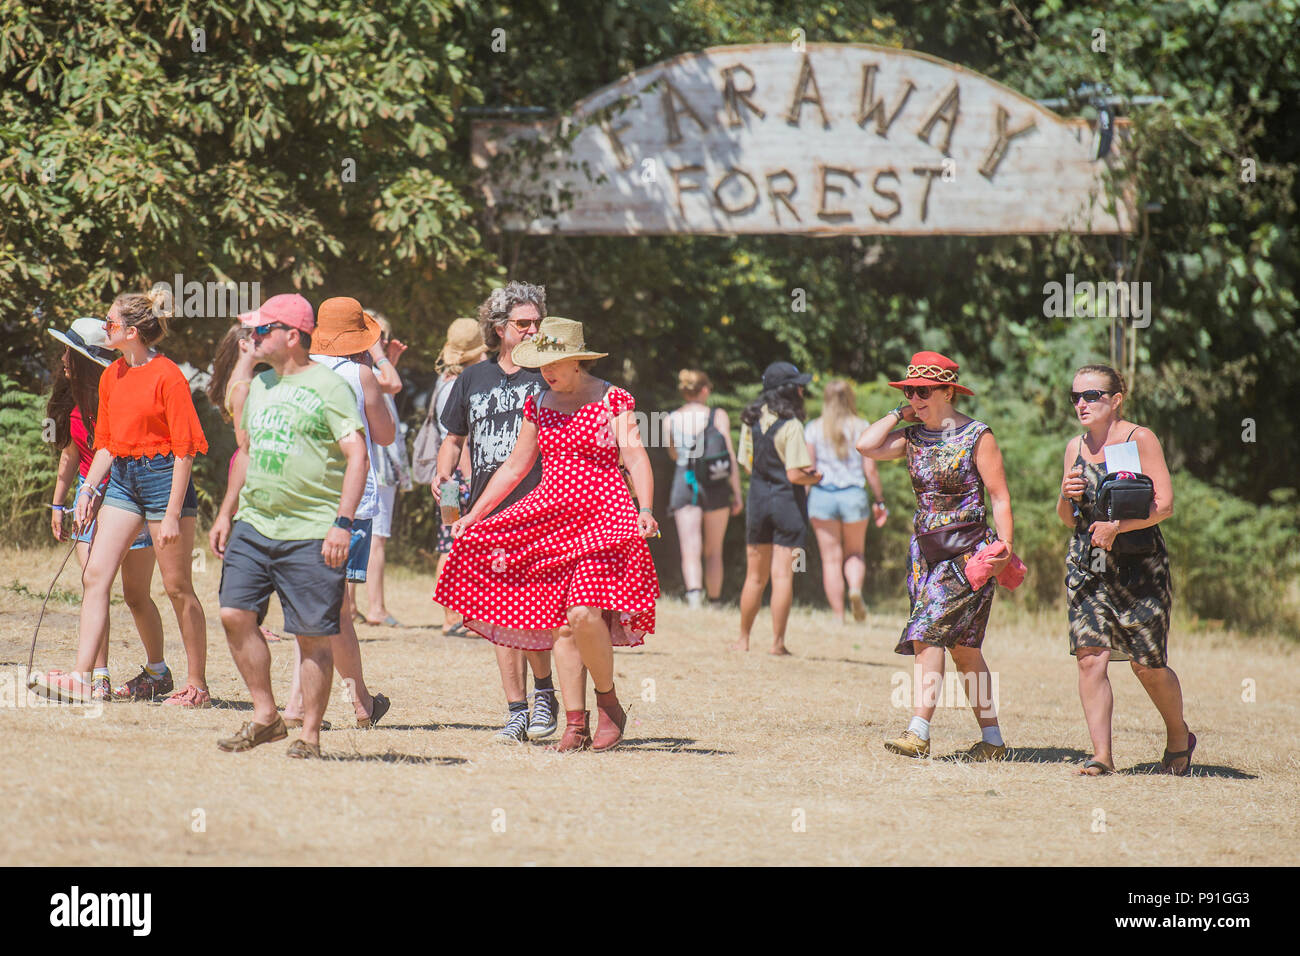 Suffolk, UK, 14 July 2018. People leaving the Faraway Forest - The 2018 Latitude Festival, Henham Park. Suffolk 14 July 2018 Credit: Guy Bell/Alamy Live News - Stock Image